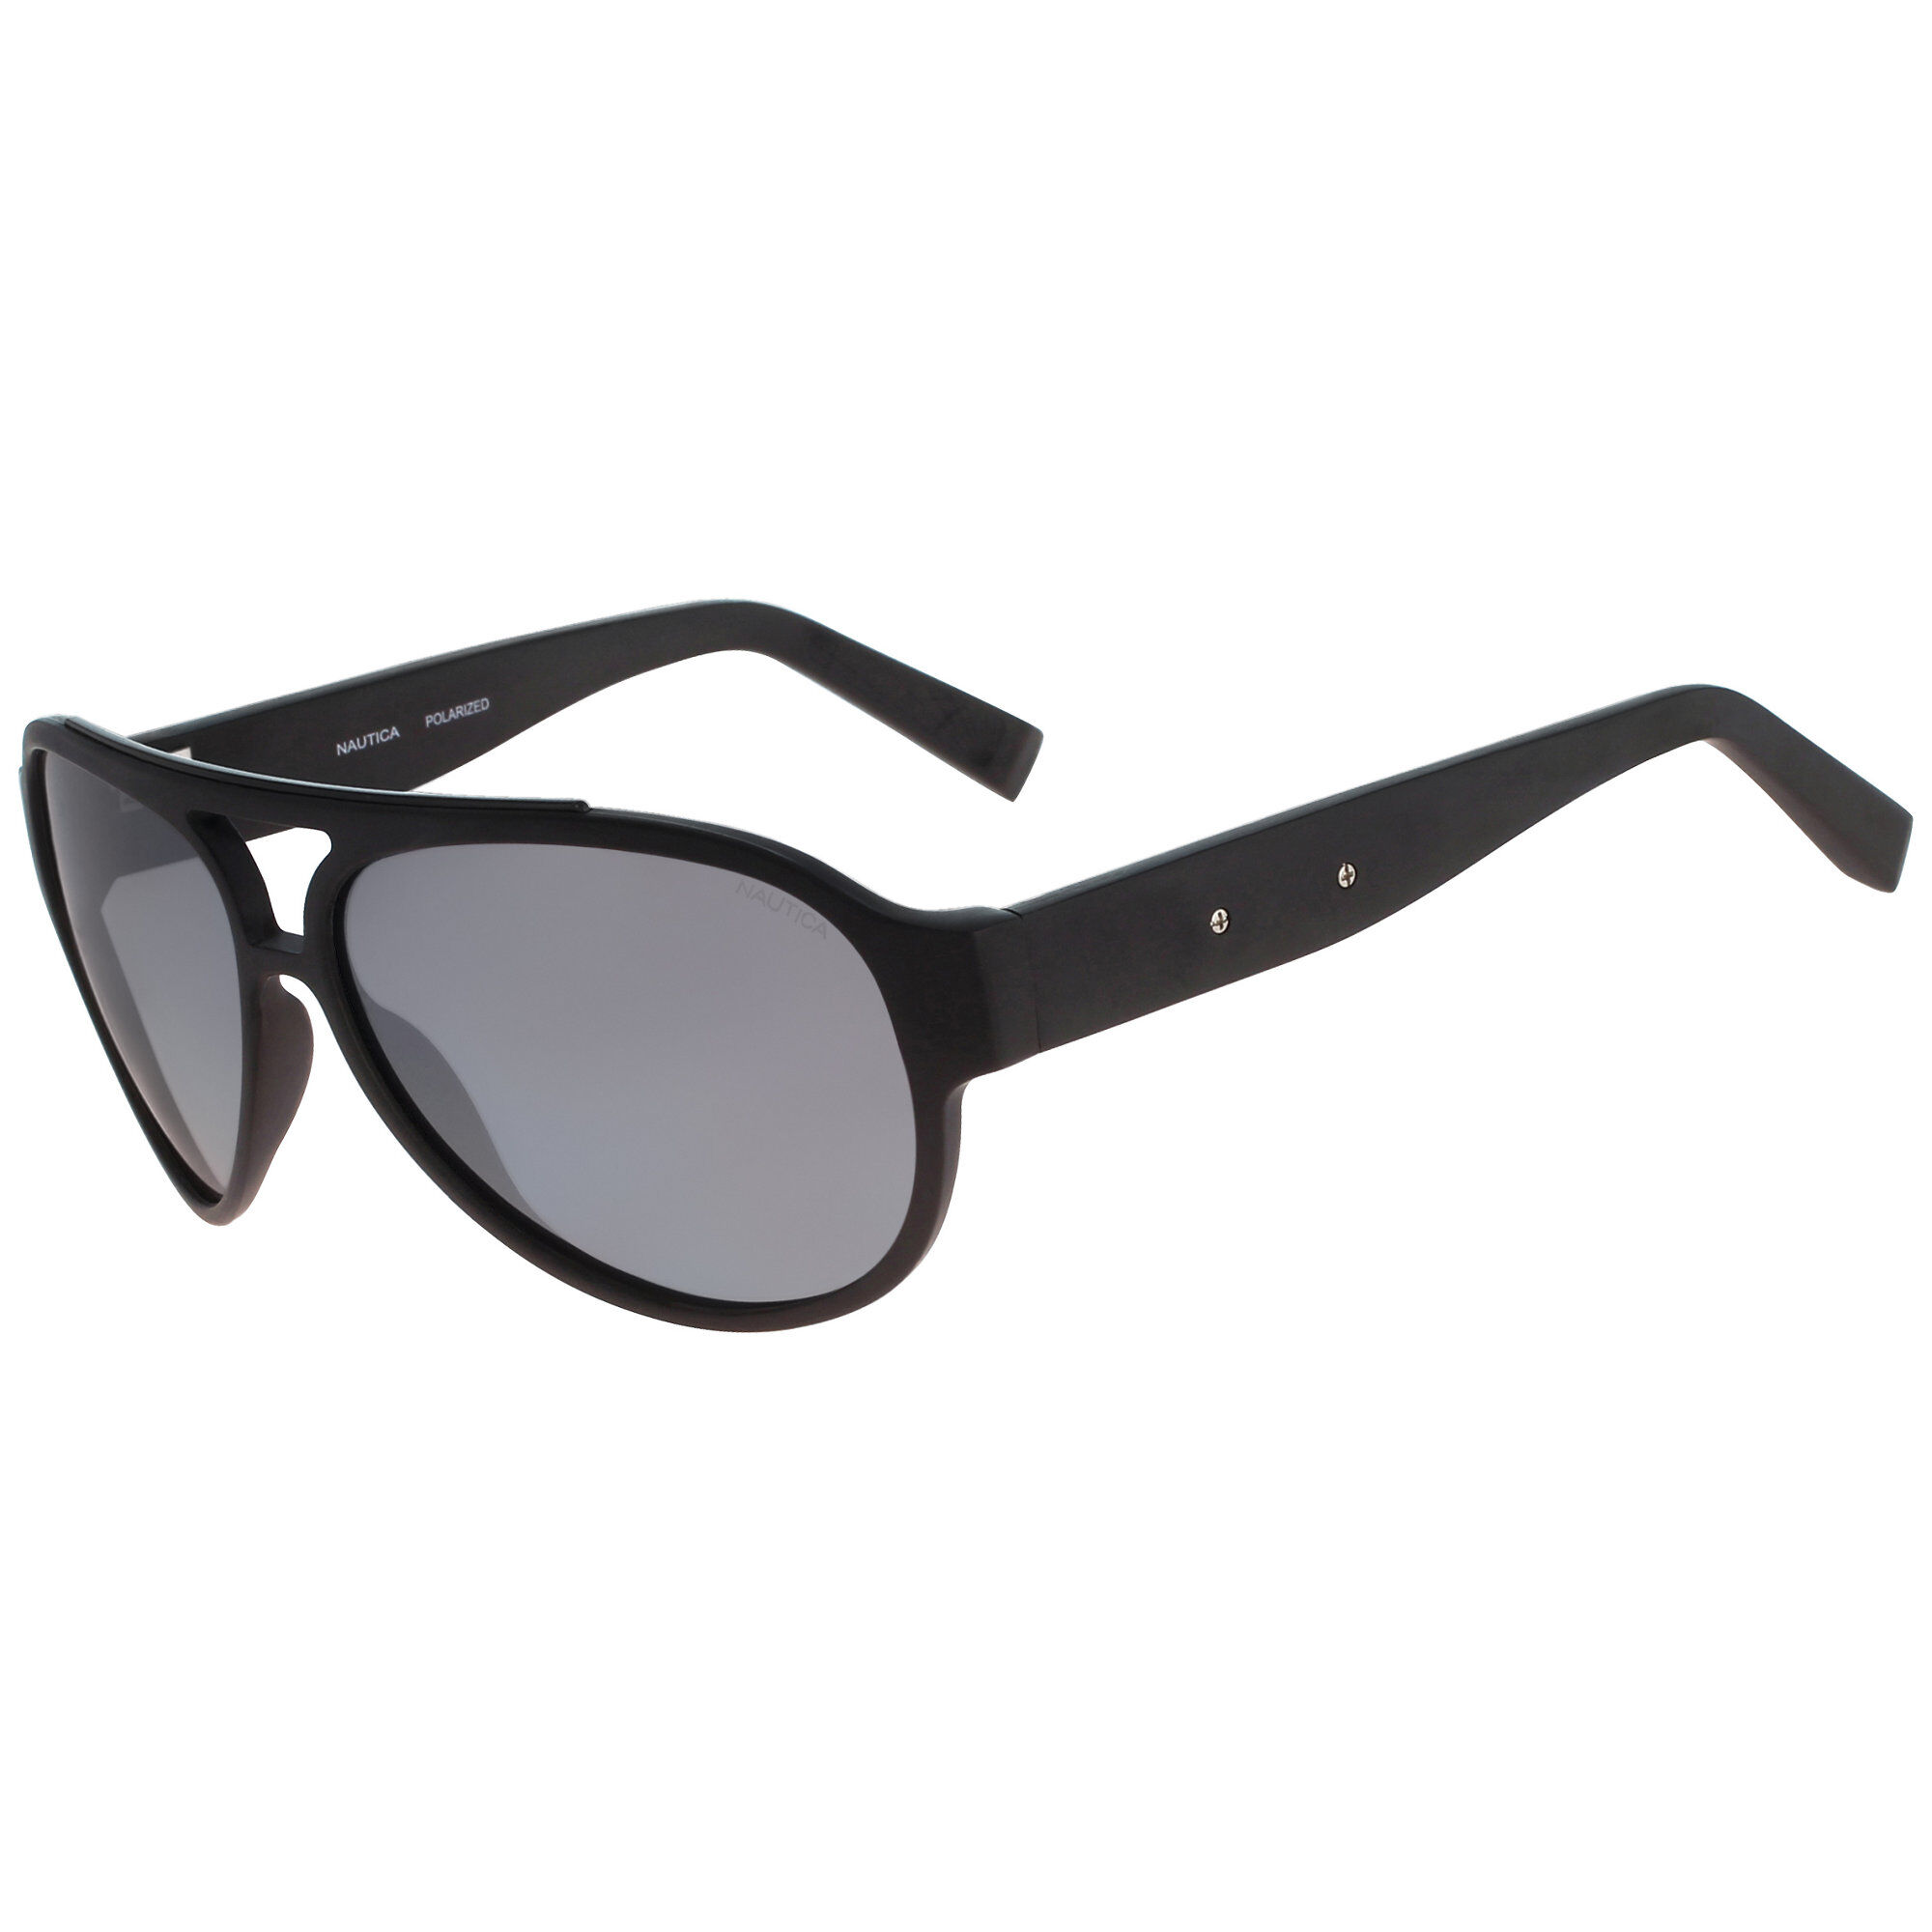 6b9bf1db650 Nautica Sunglasses N6193s 005 Matte Black 59mm for sale online